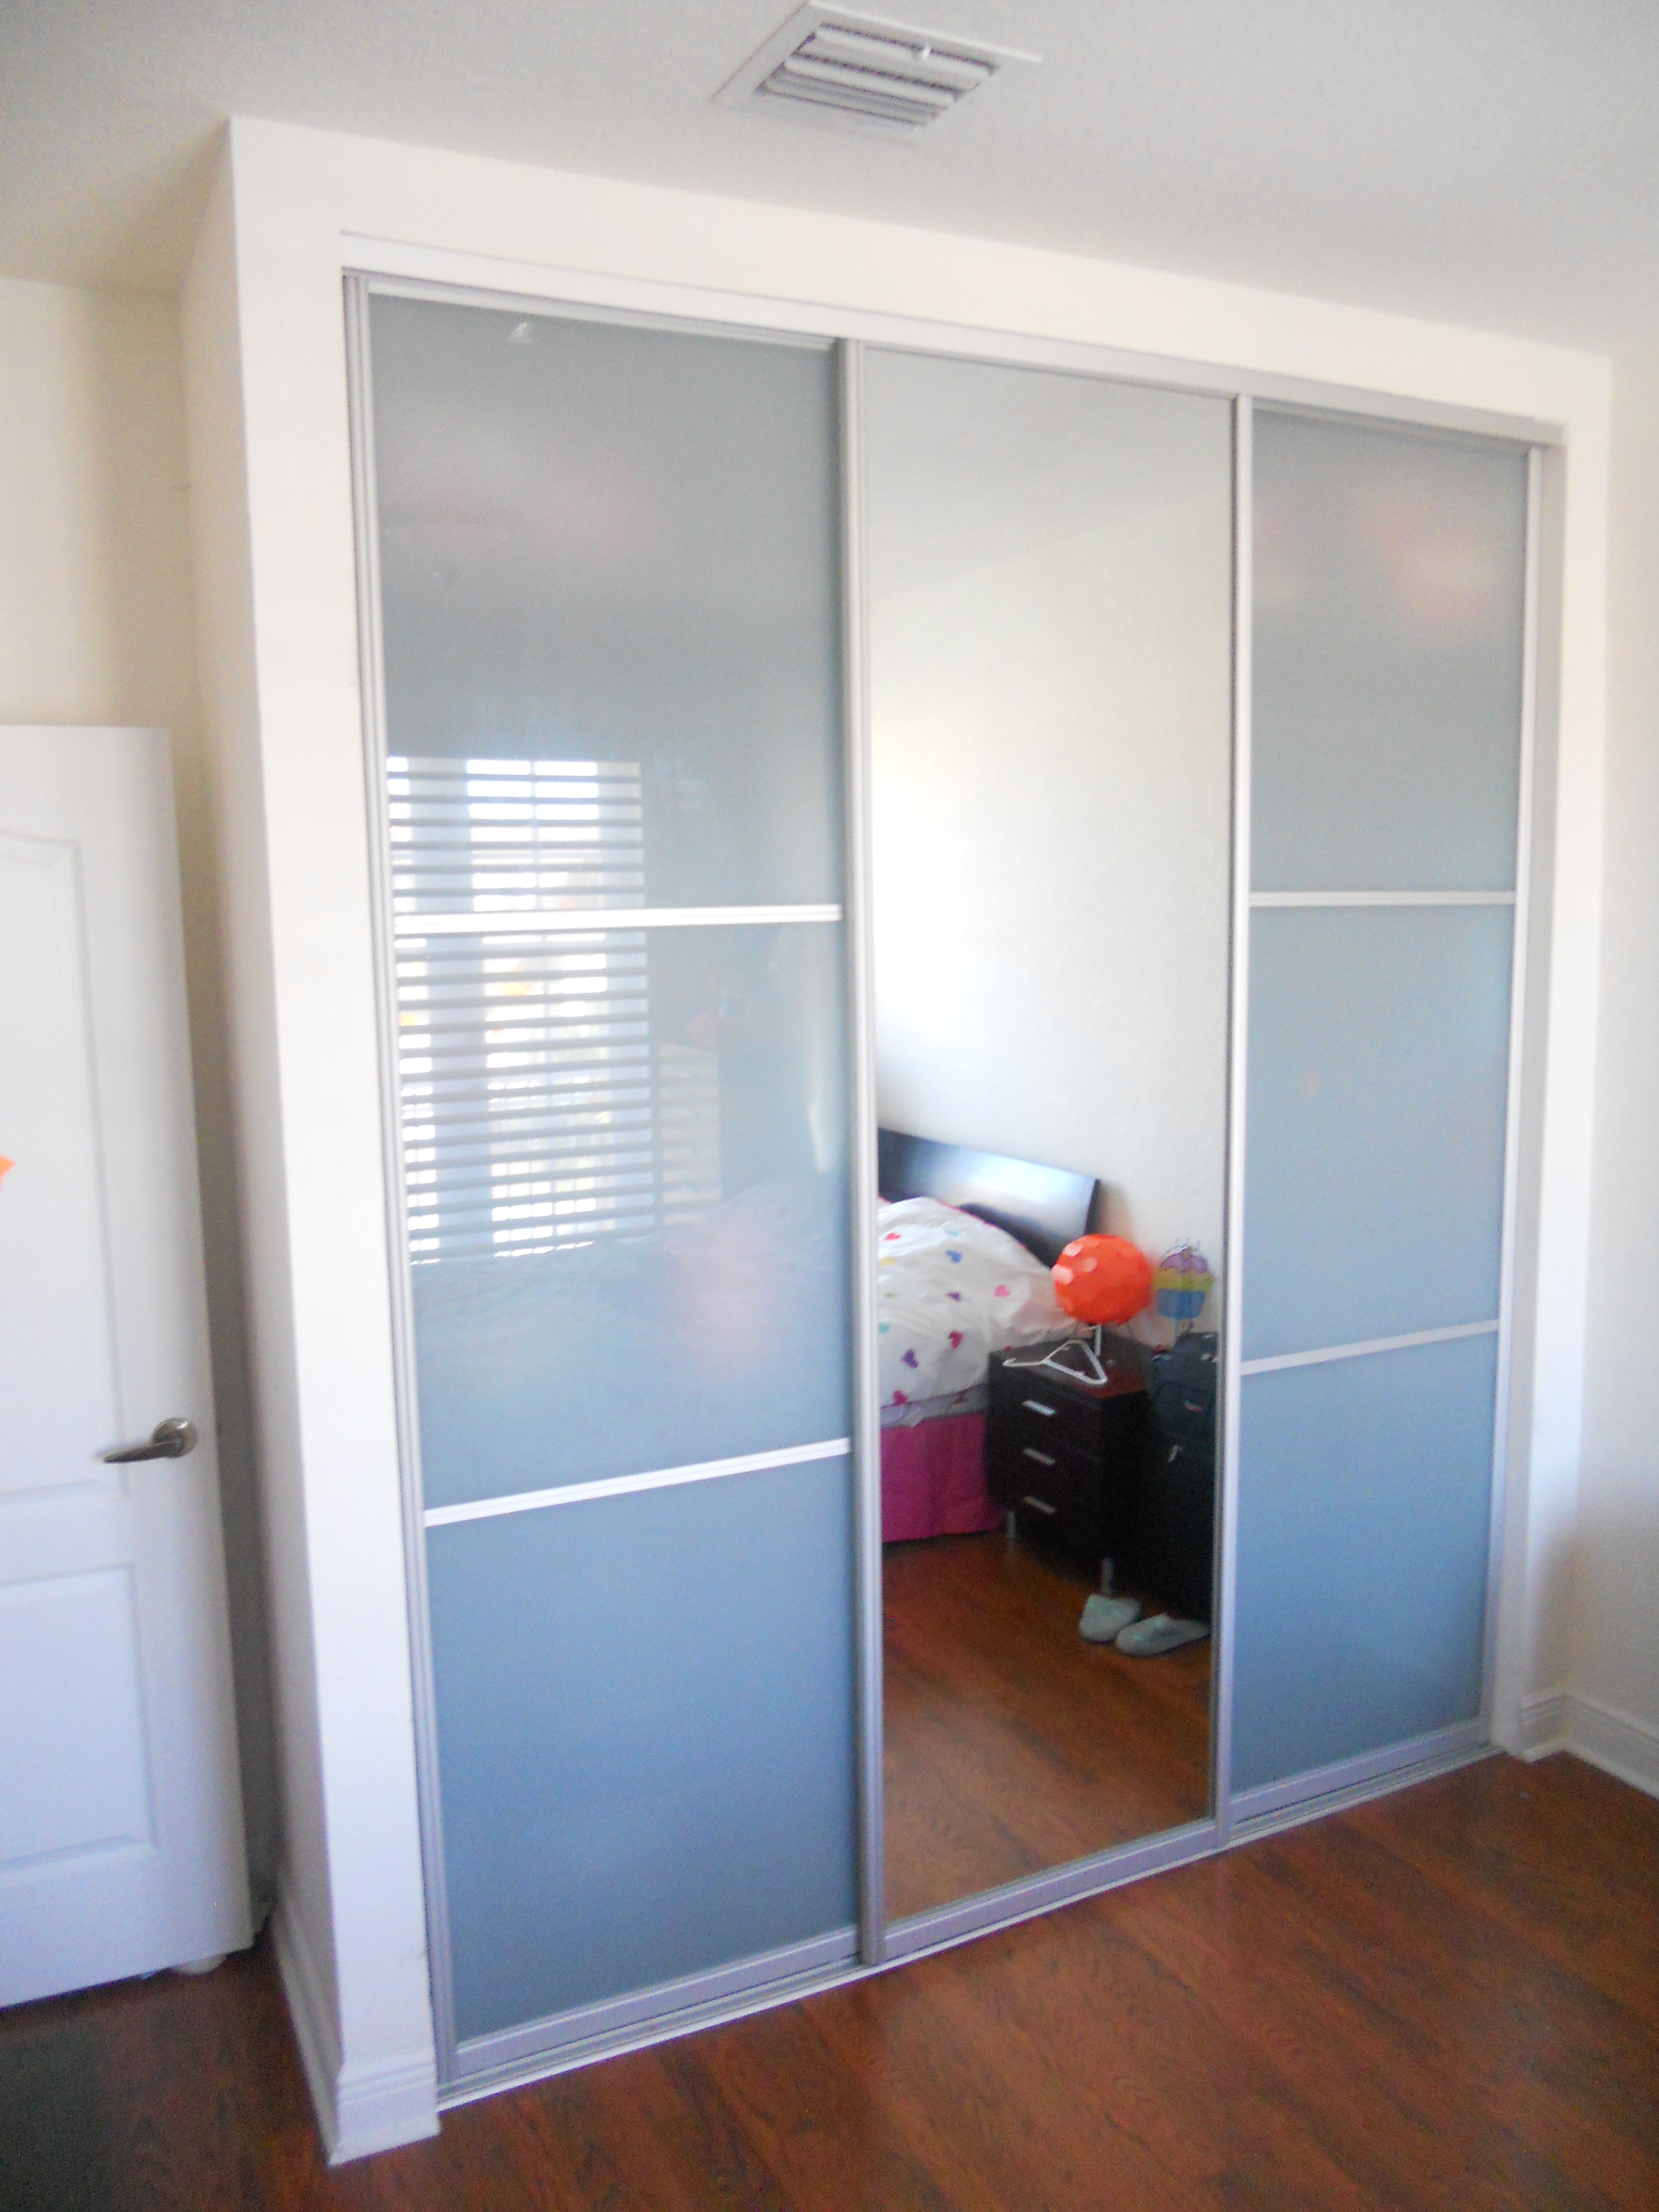 Sliding Closet Doors 3 Panels3000 X 4000